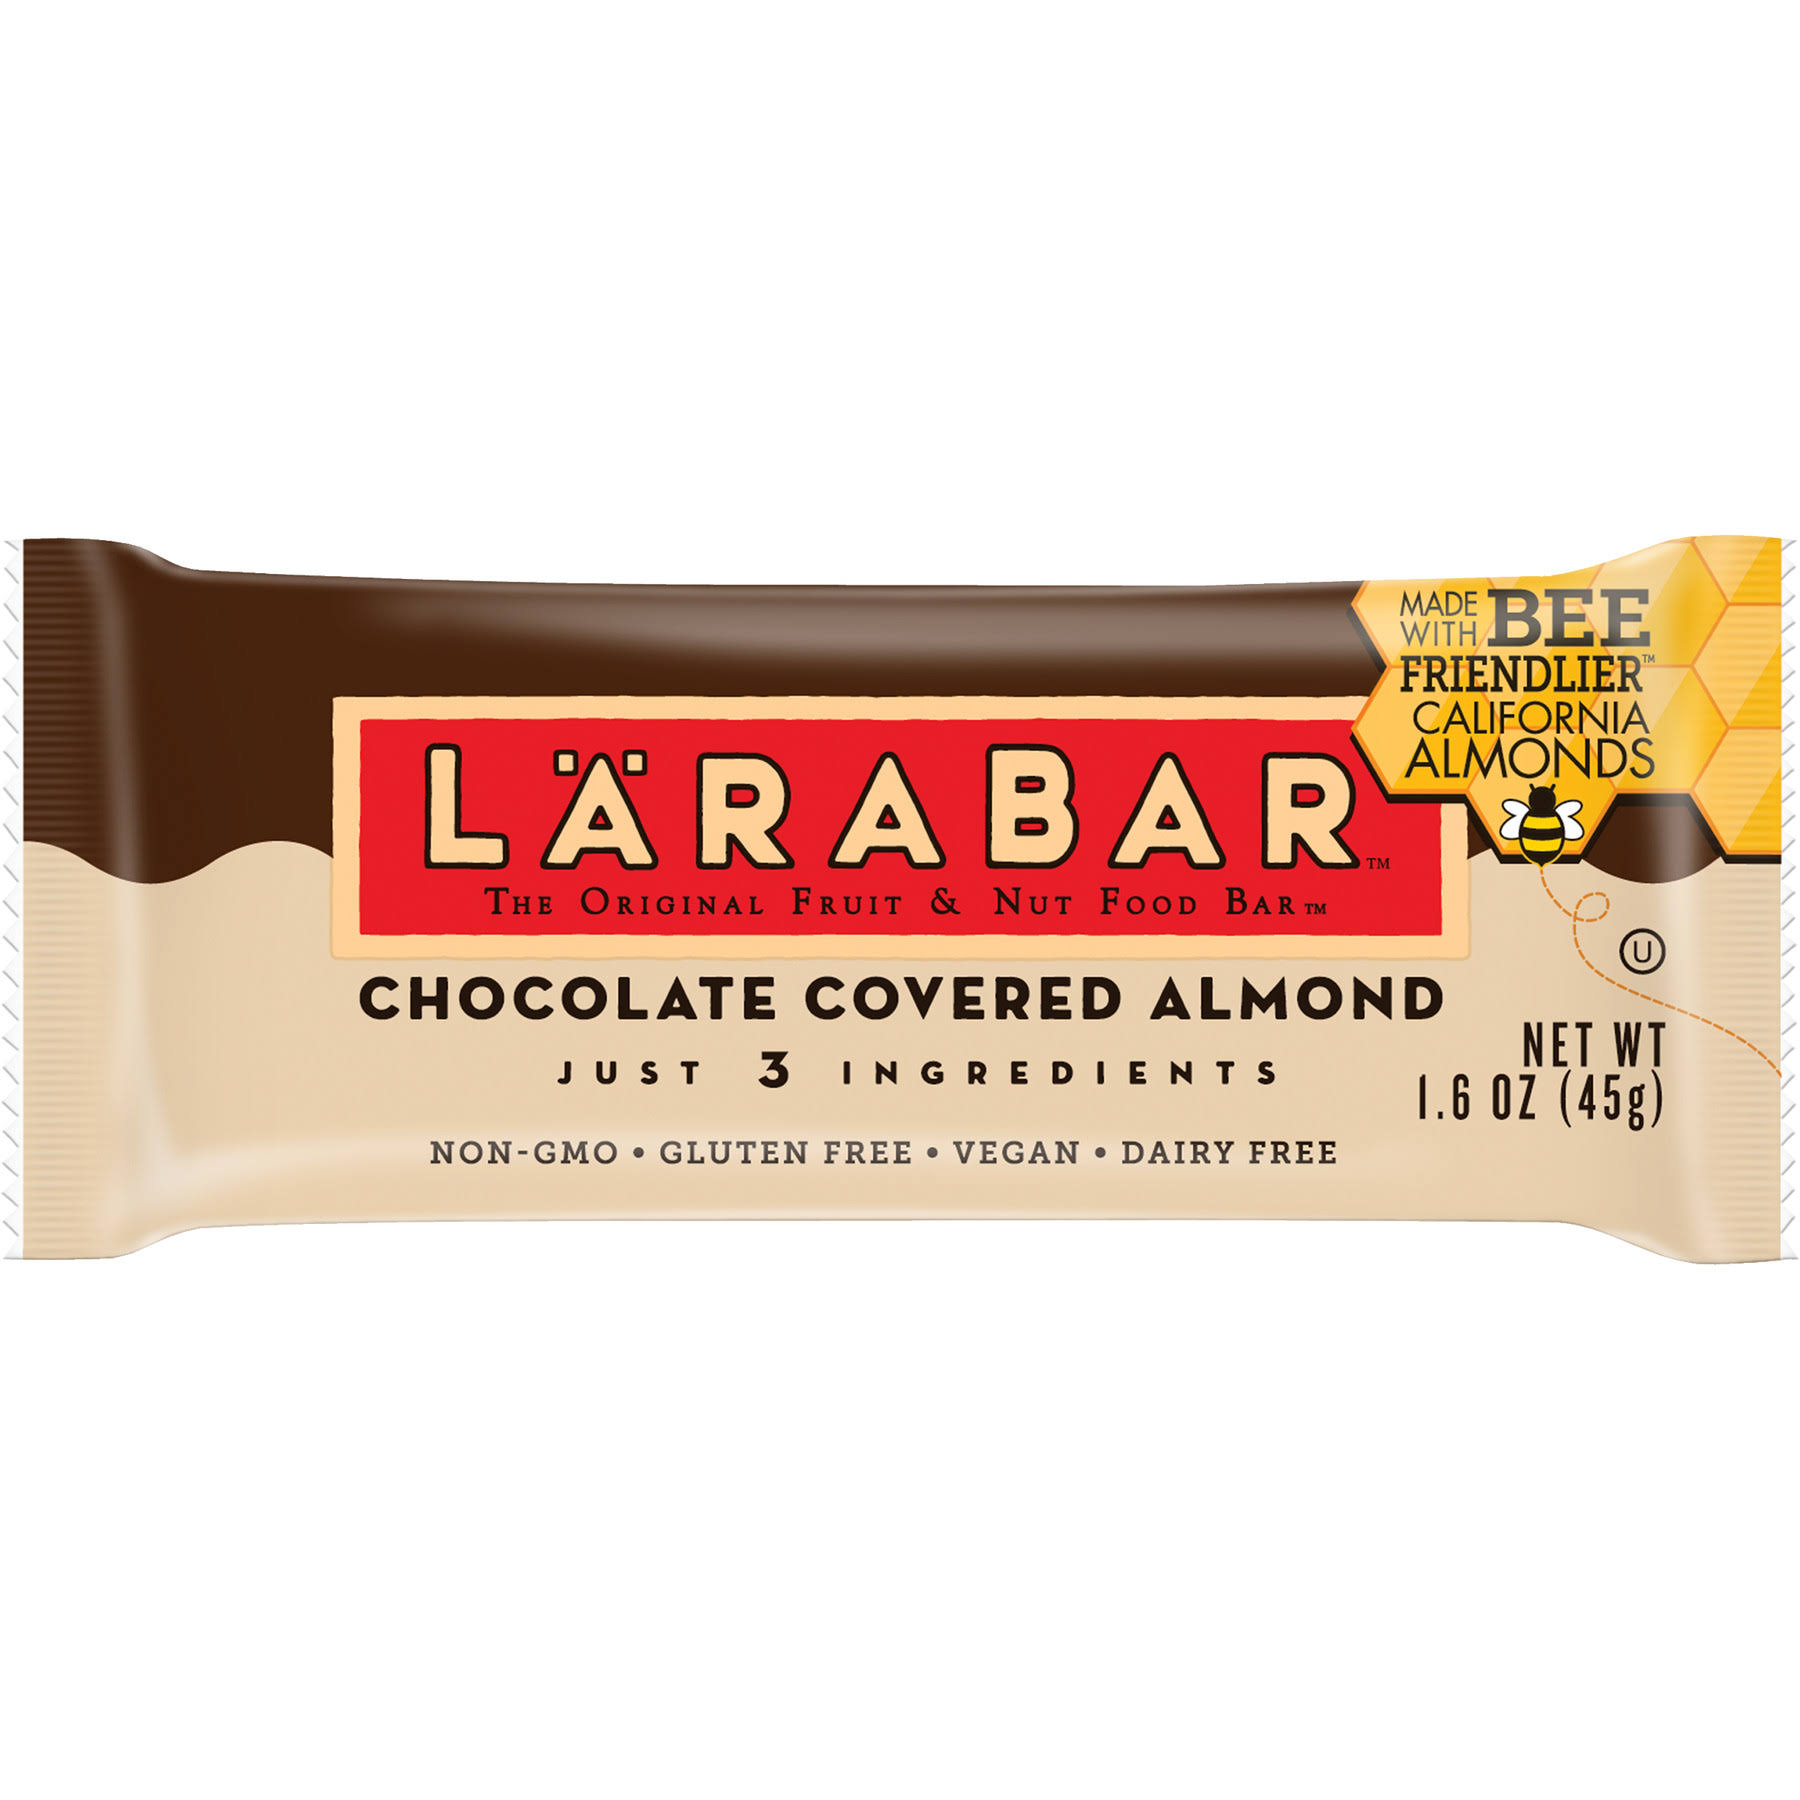 Larabar Fruit & Nut Food Bar - Chocolate Covered Almond, 1.6oz